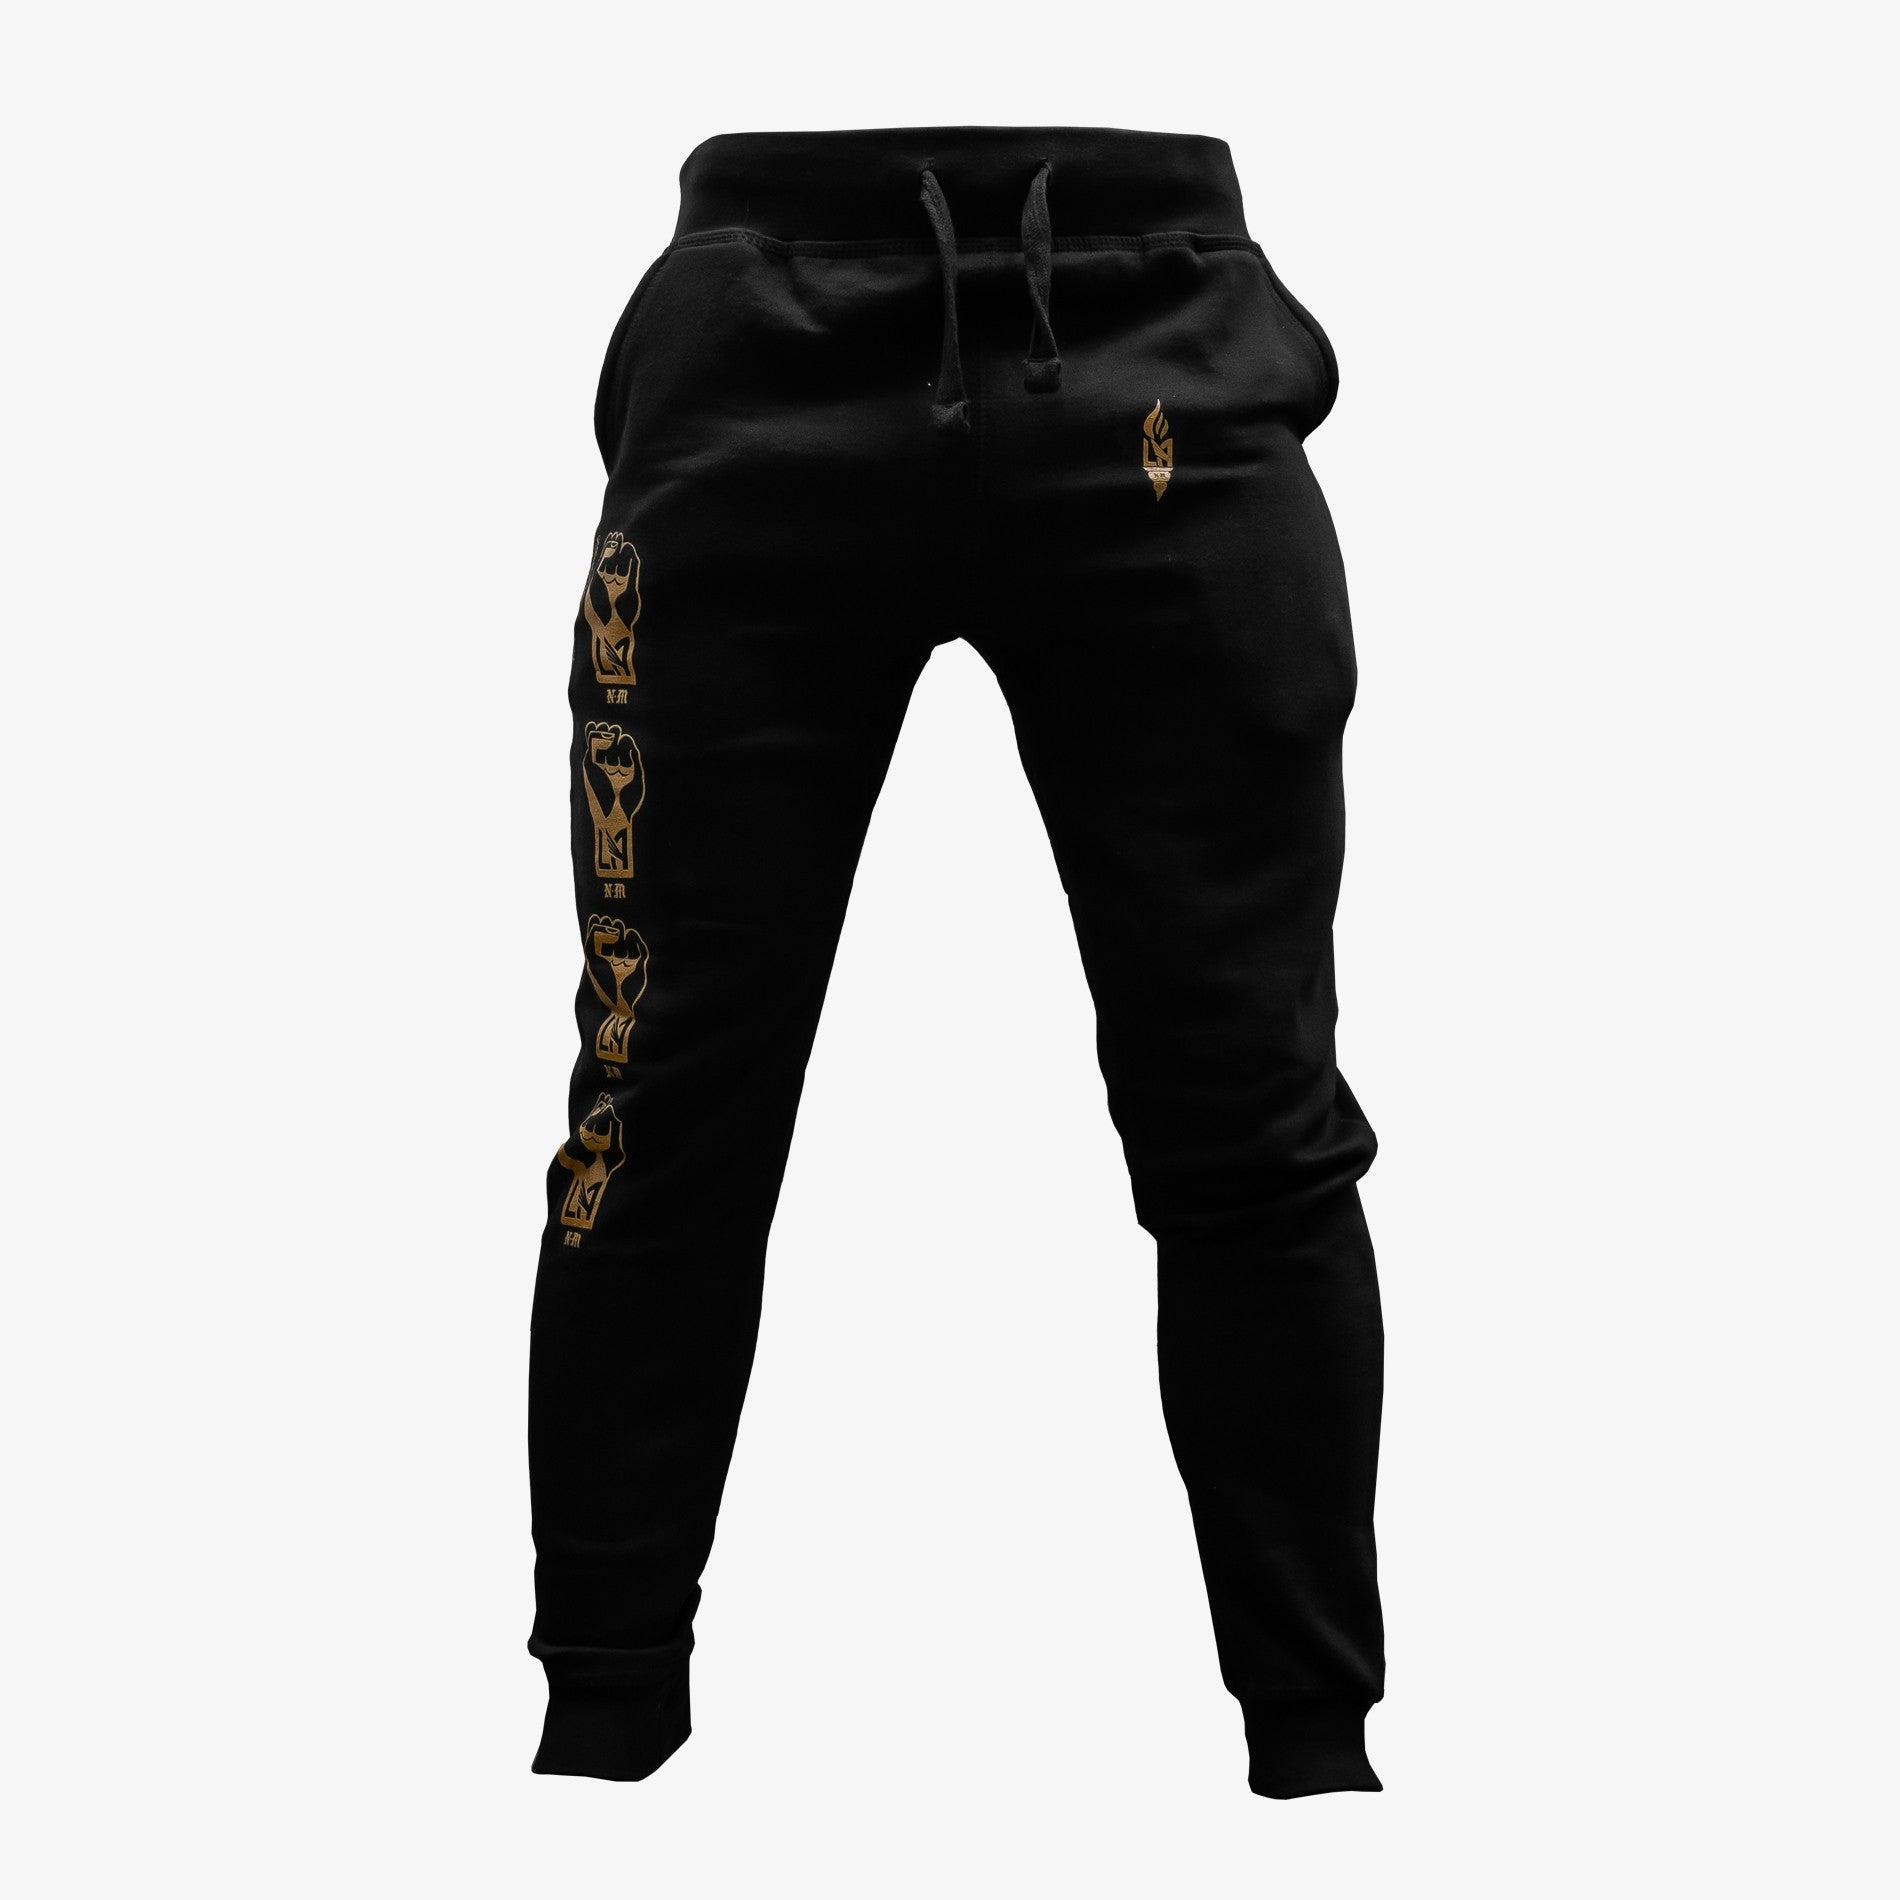 LAFC x Never Made Fist Sweat Pants - Black/Gold